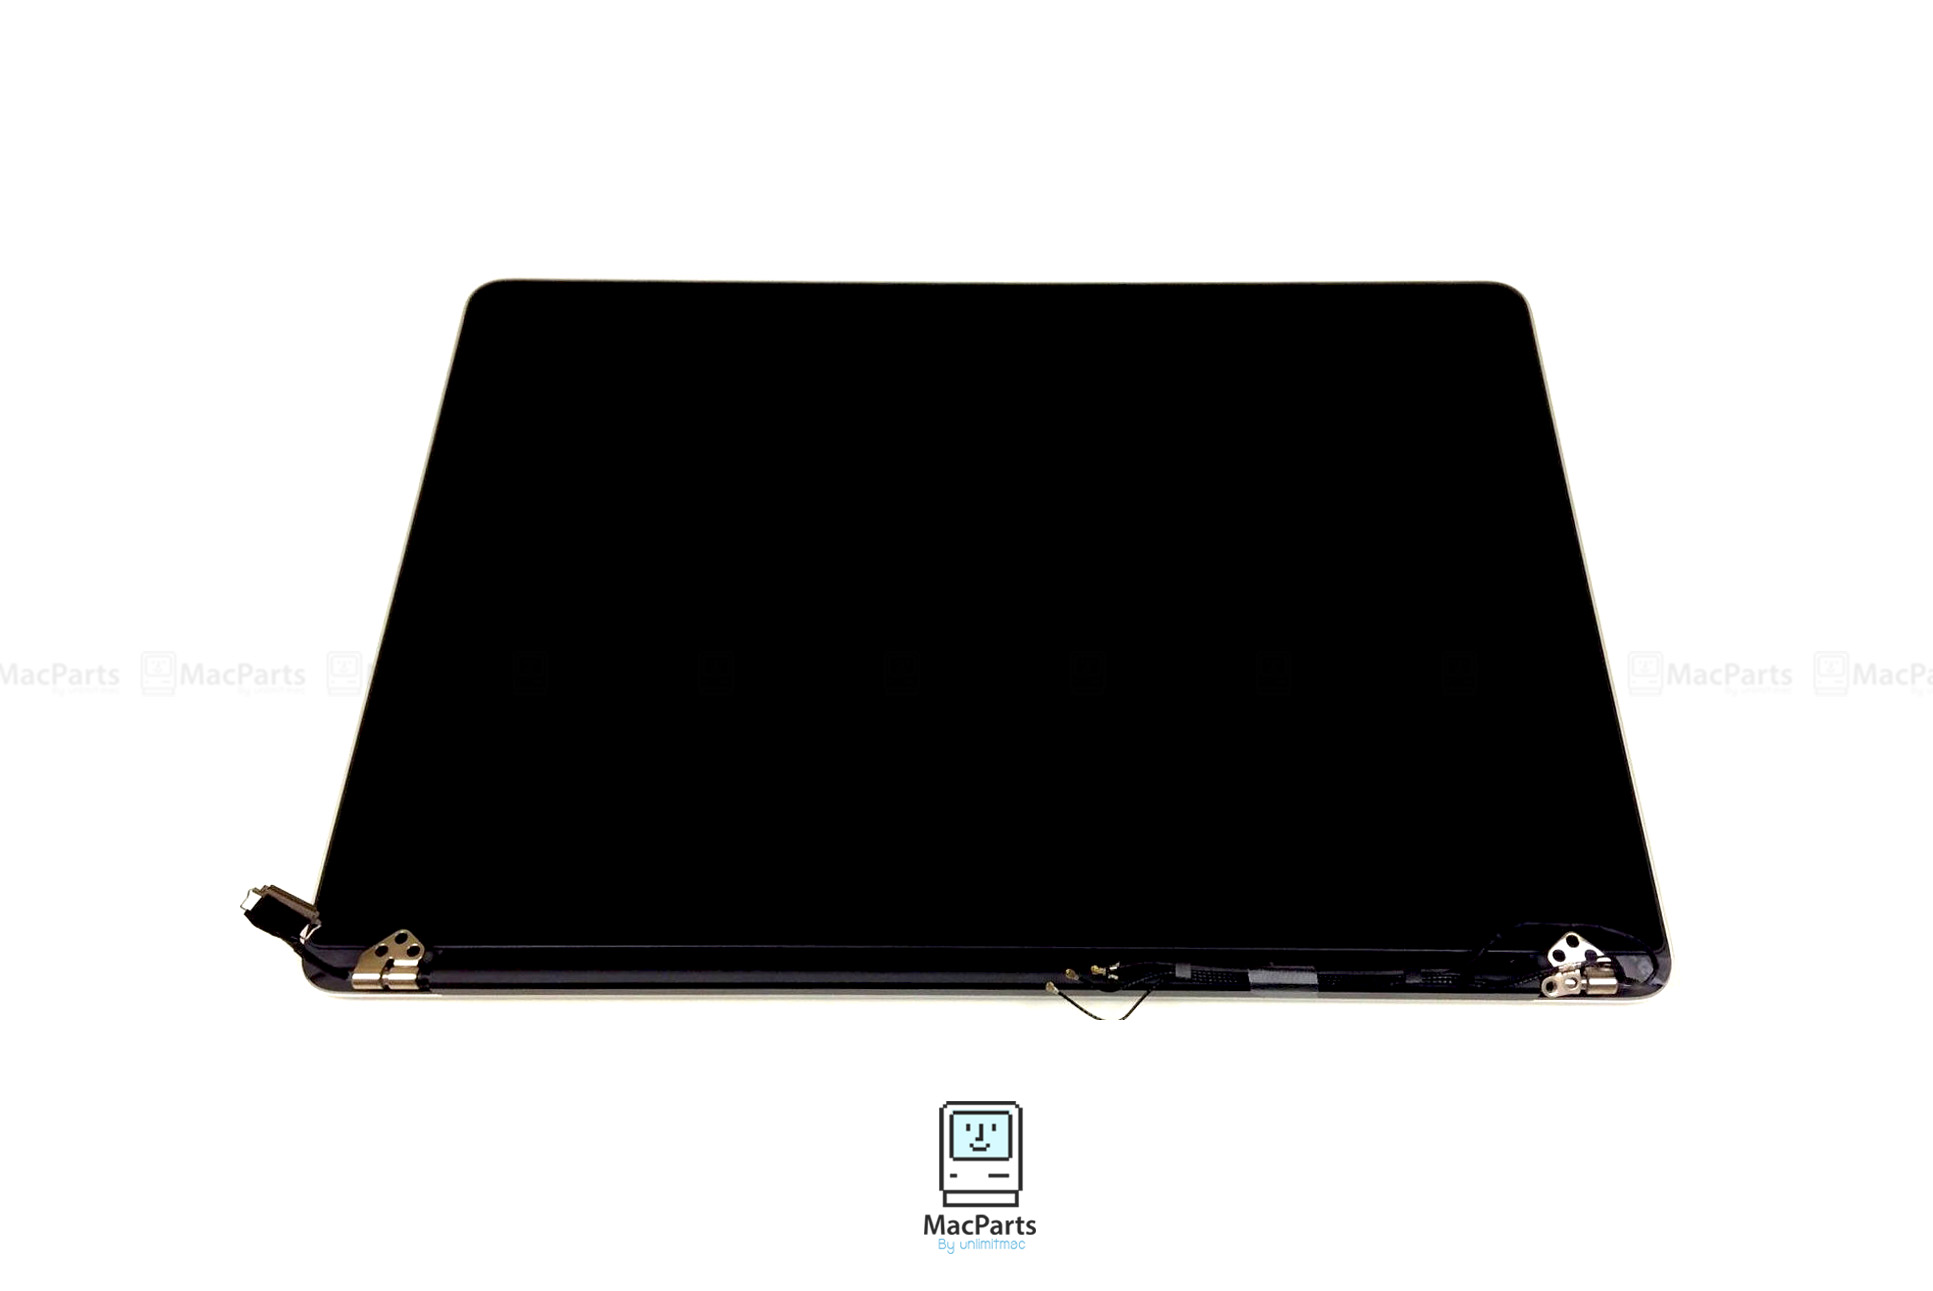 661-8310 LCD Screen Display Assembly For MacBook Pro (Retina, 15-inch, Mid 2014); MacBook Pro (Retina, 15-inch, Late 2013)